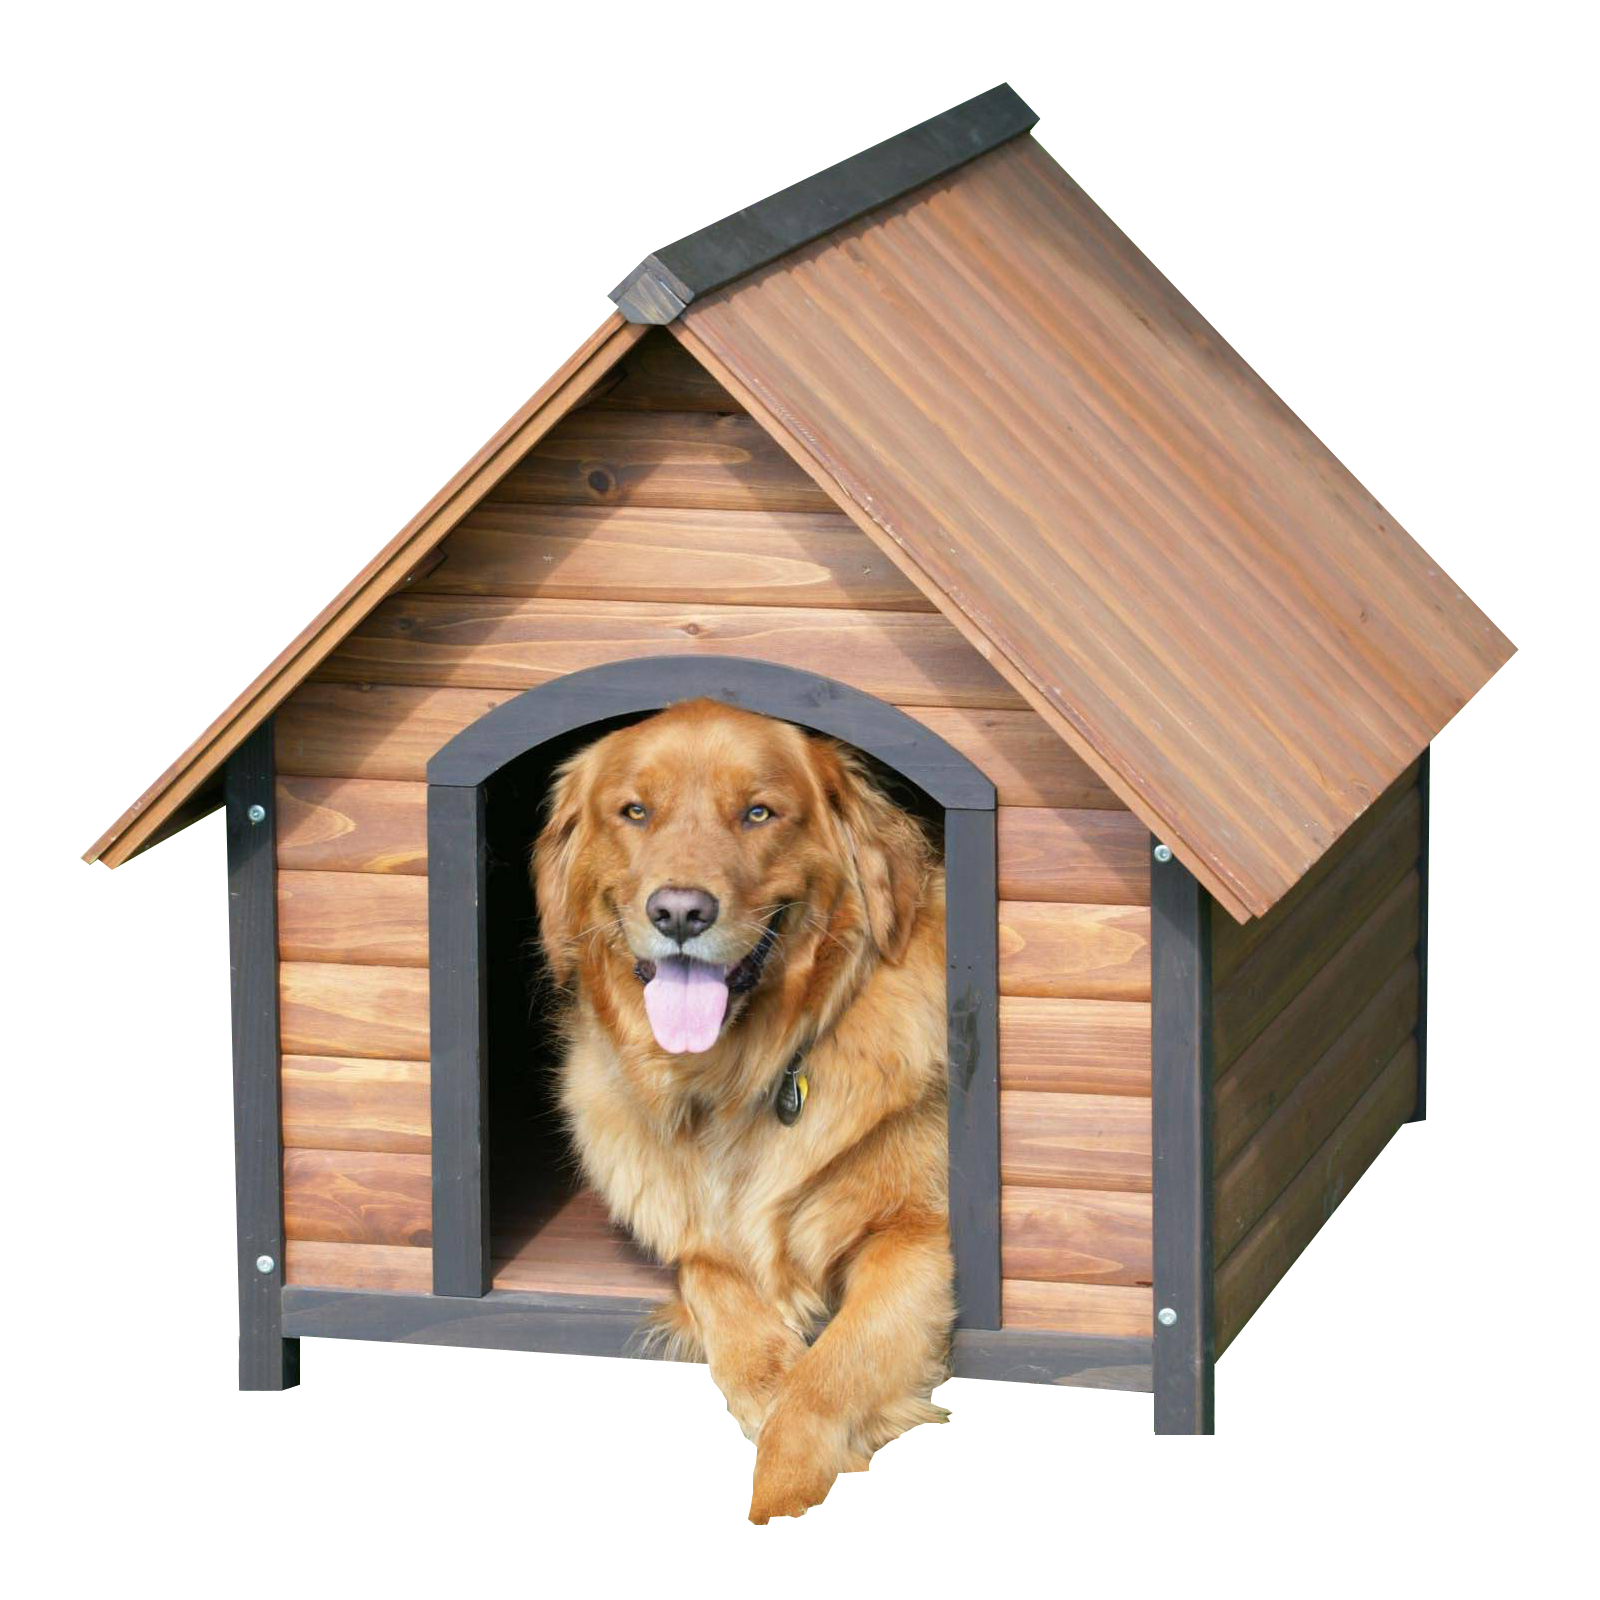 House png image purepng. Doghouse clipart dog cage